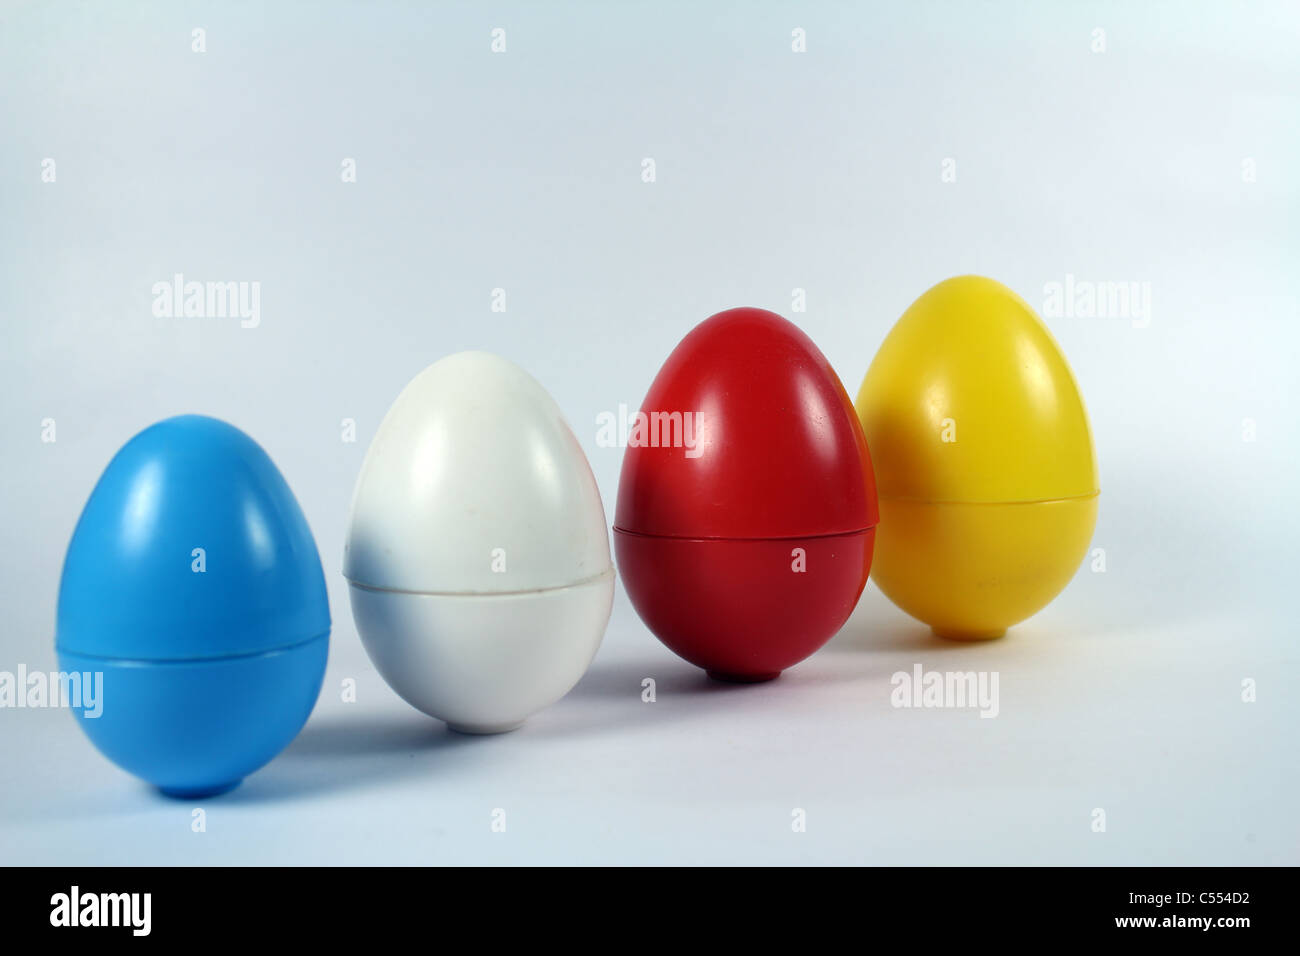 Conceptual shot of plastic eggs in different sizes - Stock Image